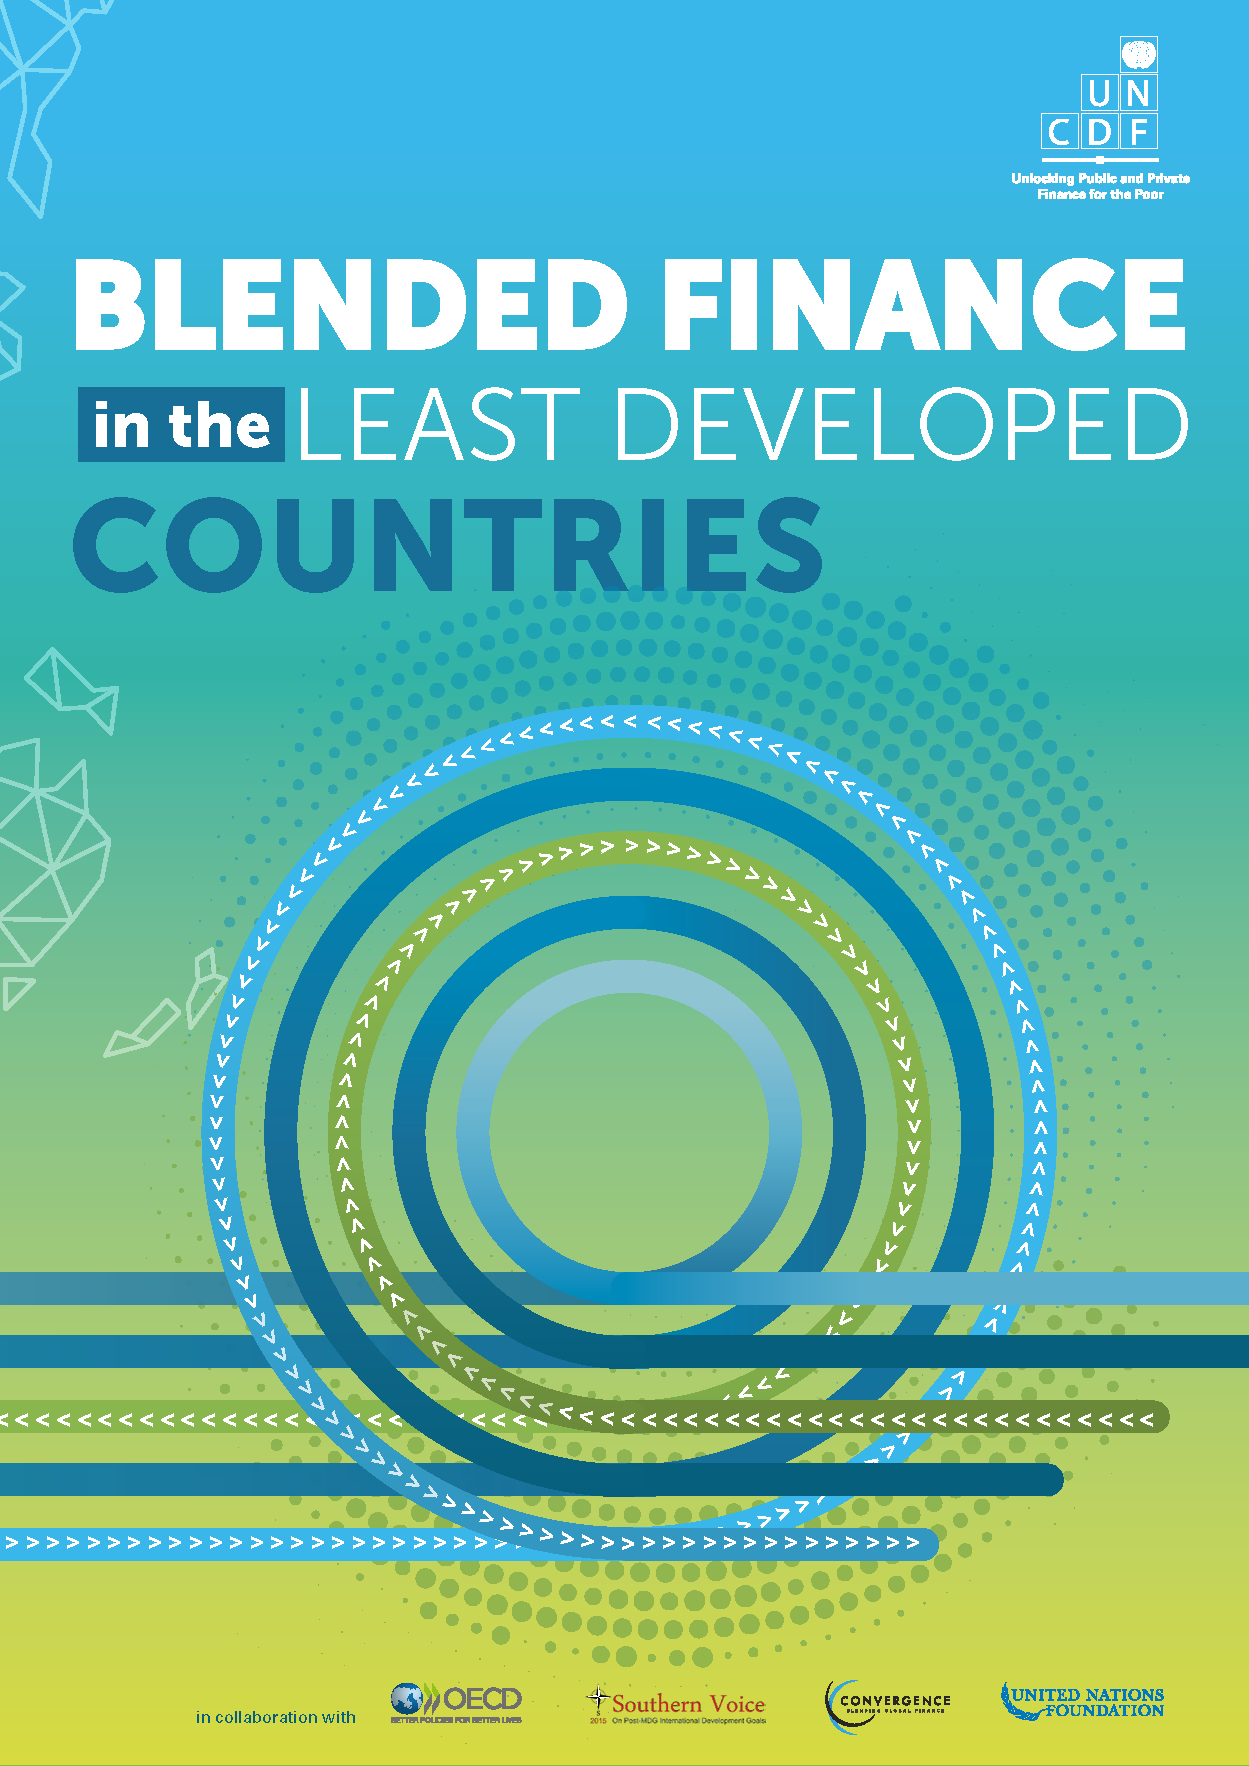 Blended Finance in the Least Developed Countries